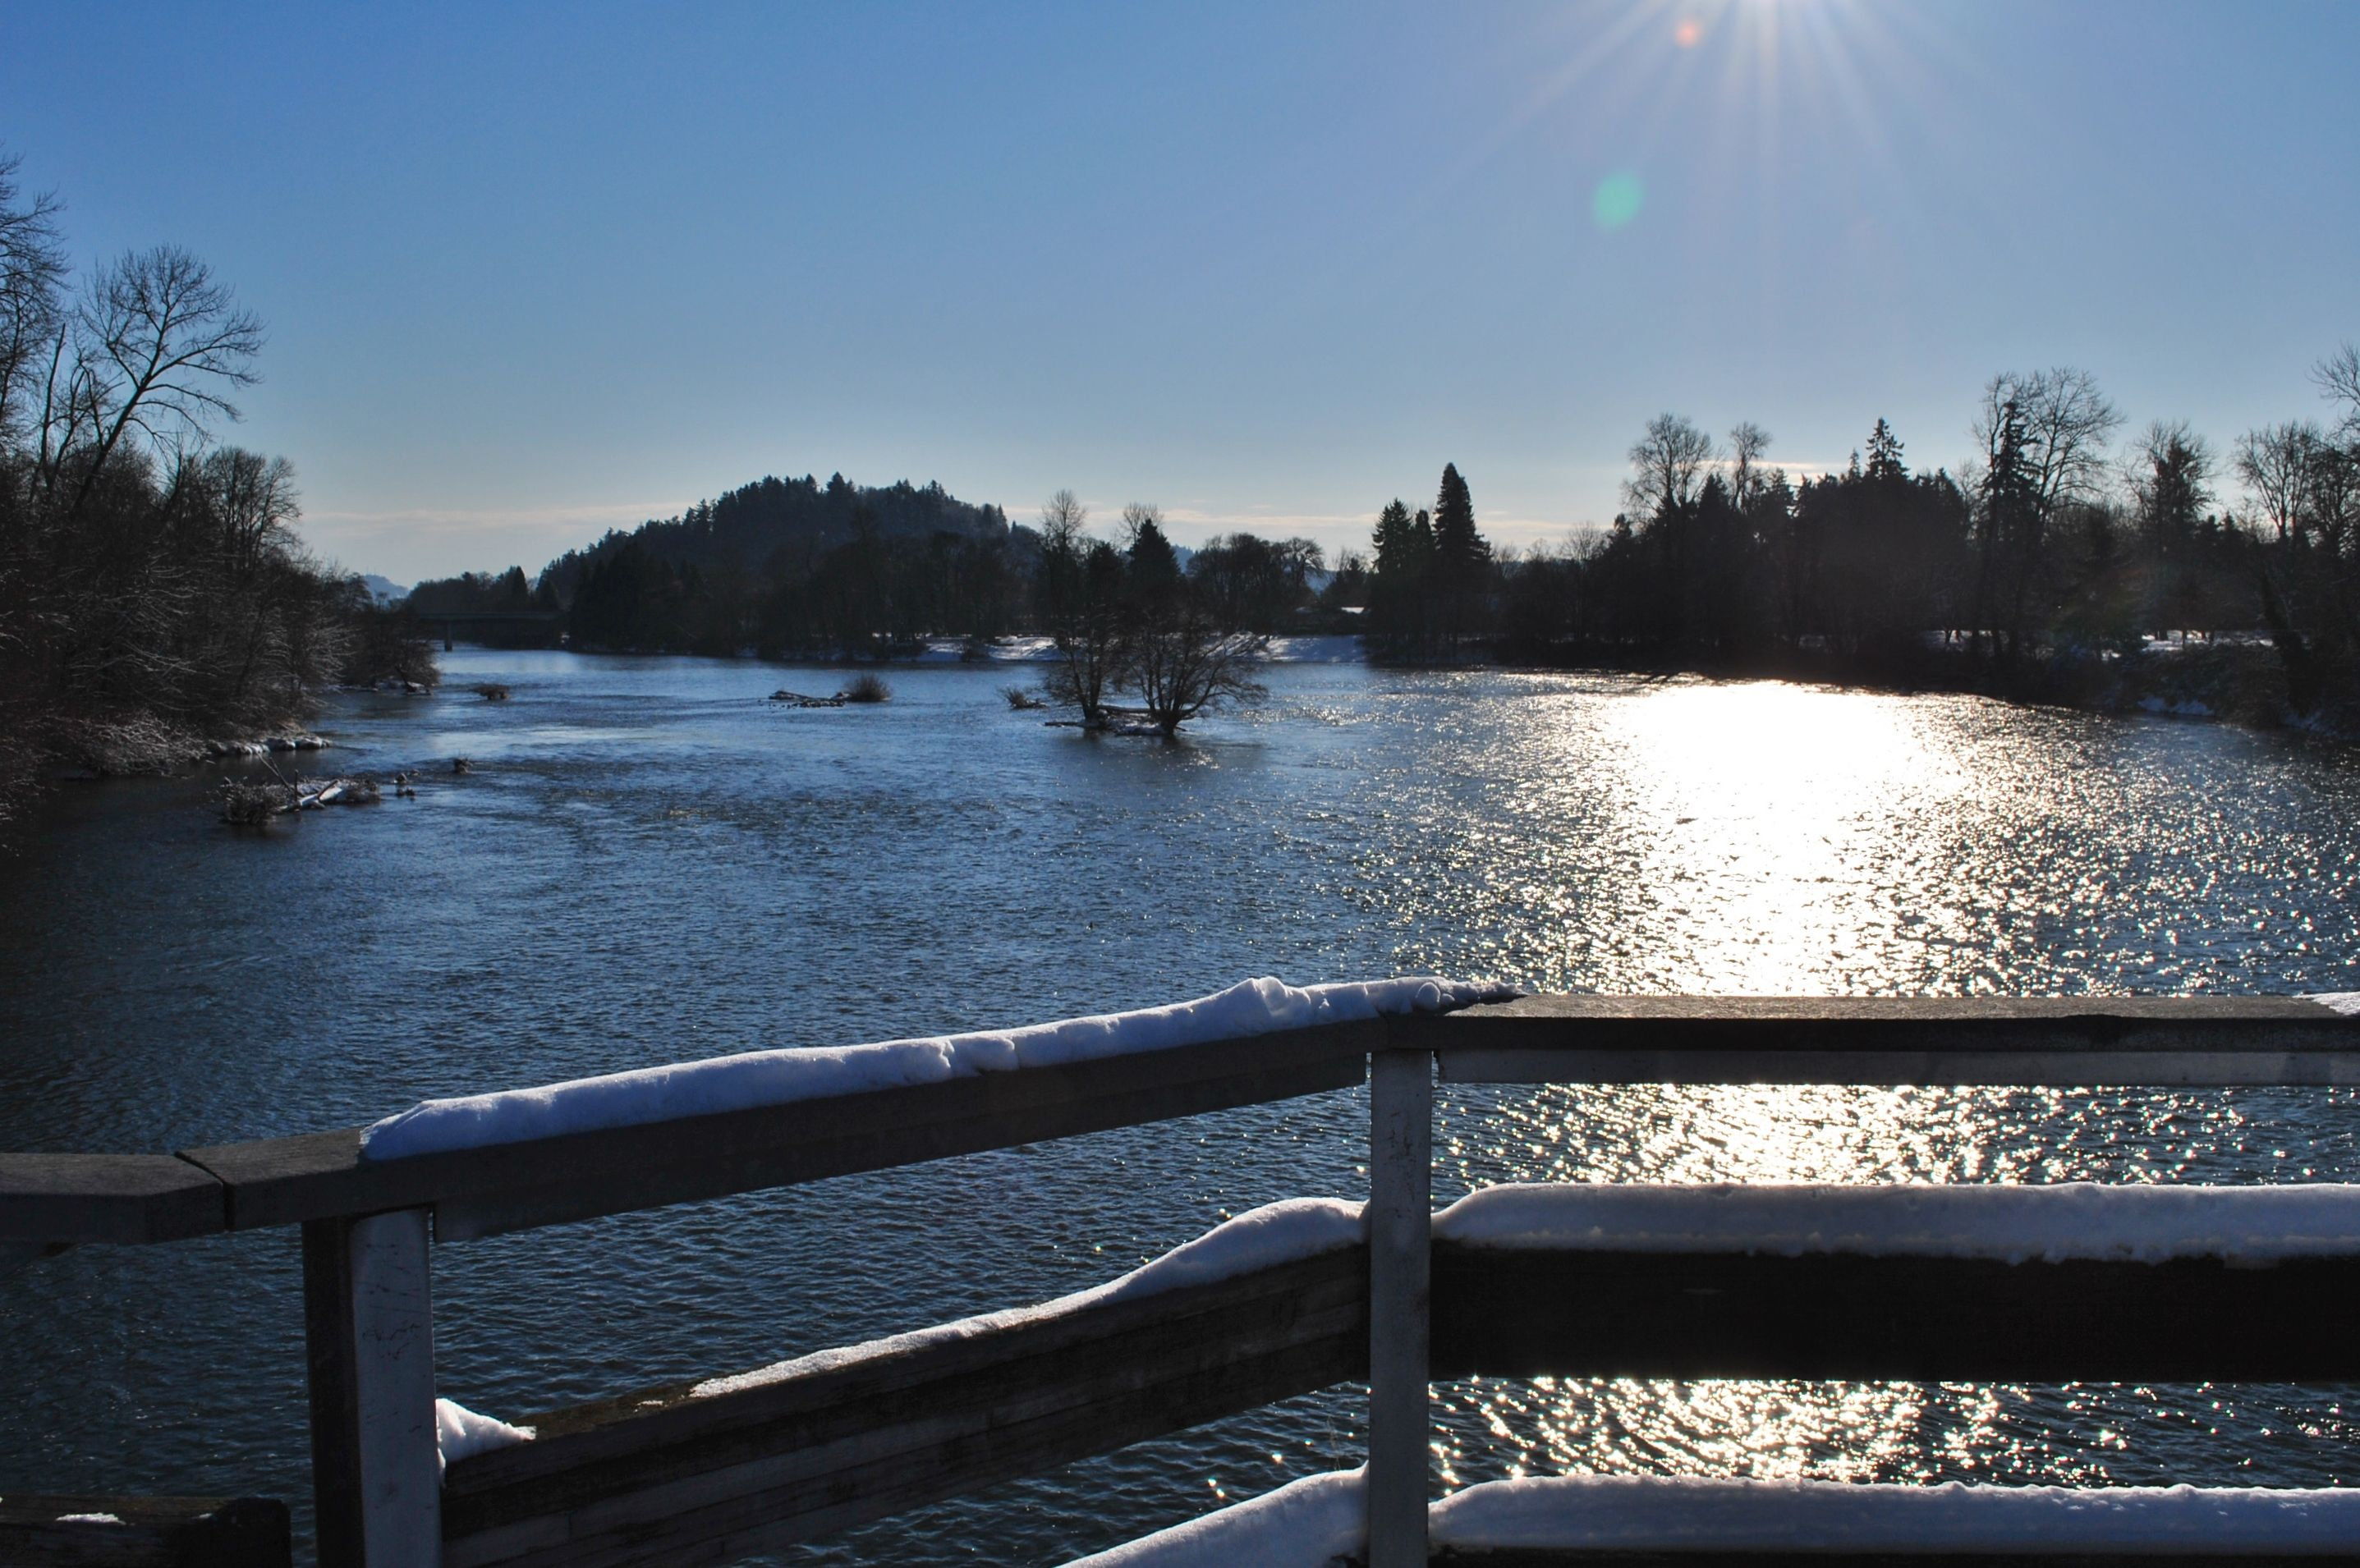 Eugene oregon river park places i 39 ve been pinterest for Fishing eugene oregon